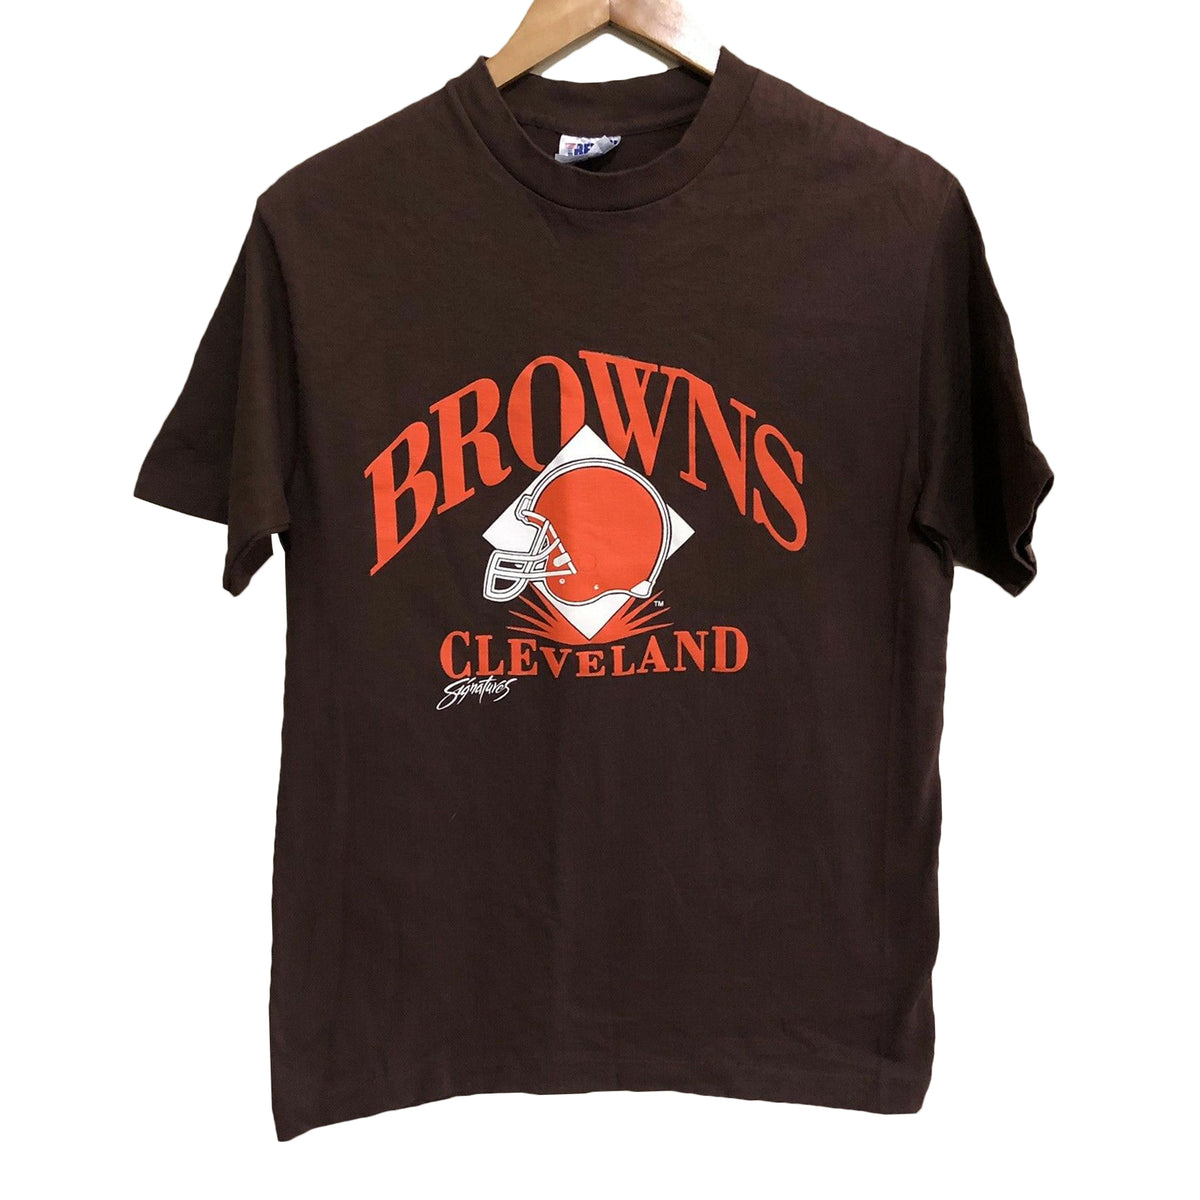 Cleveland Browns Trench Vintage NFL Football T-Shirt Medium